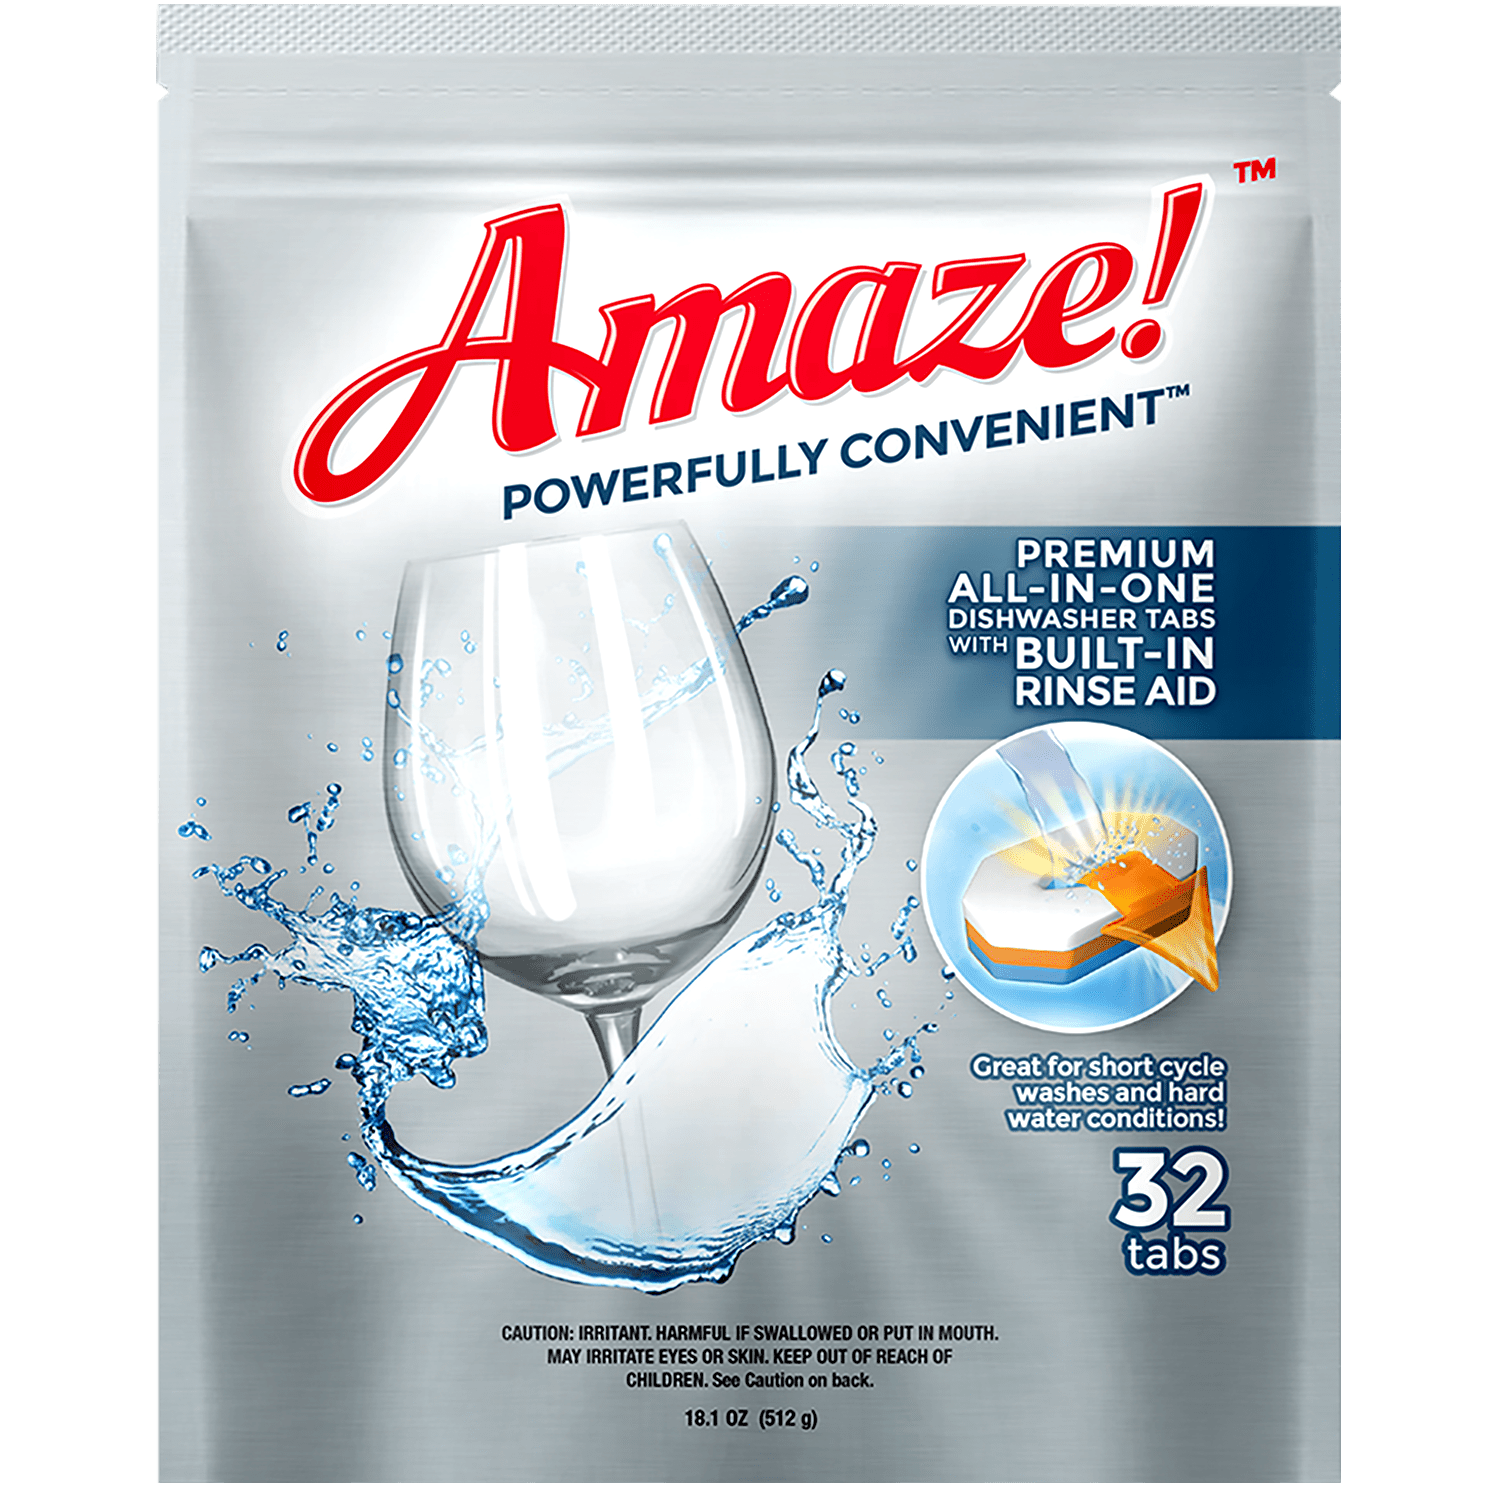 Premium All-in-One Dishwasher Tablets